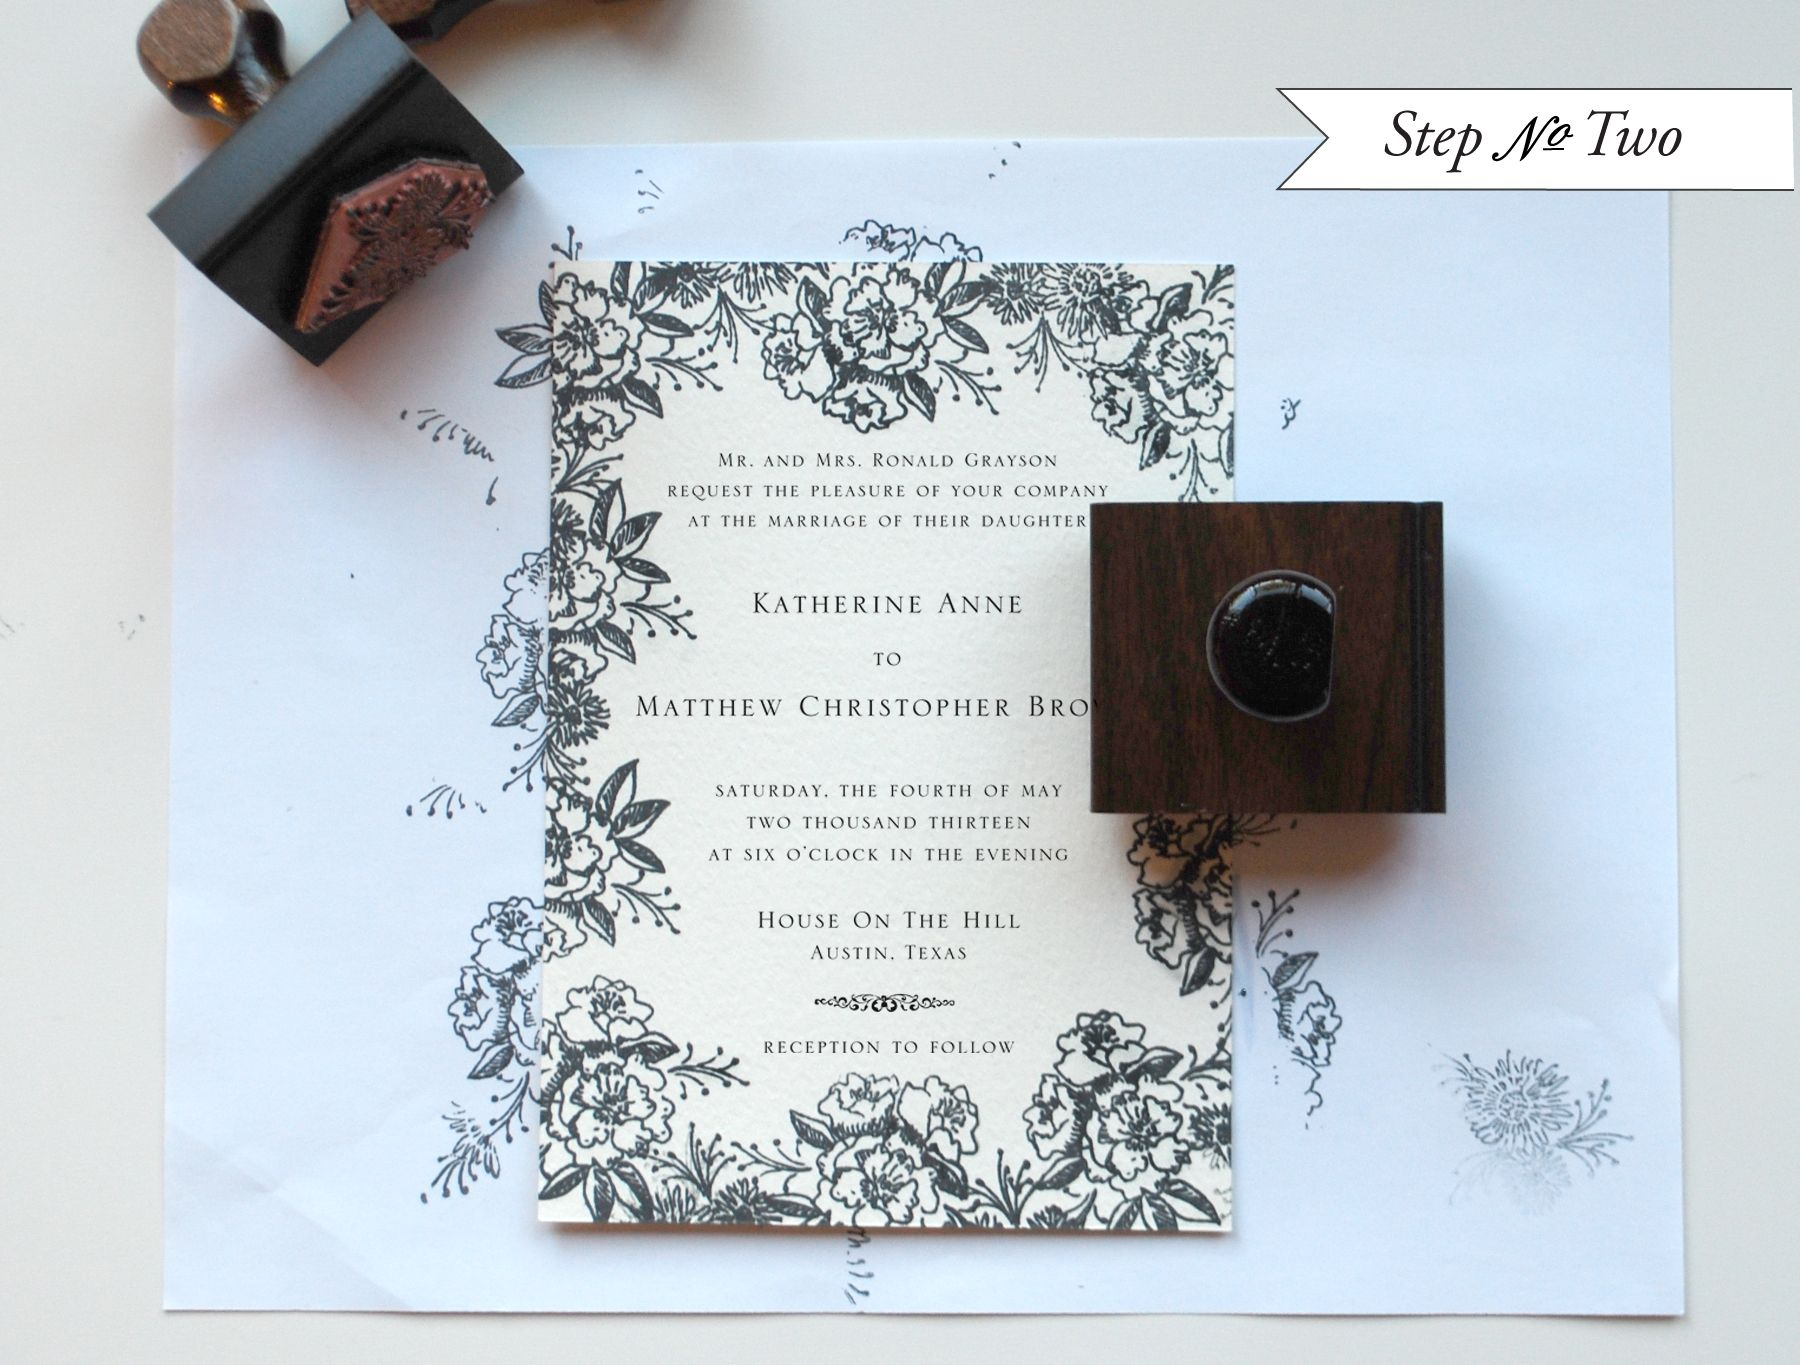 Make Your Own Wedding Invitations Online Free: Design Your Own Wedding Invitations Online Free Superb Of